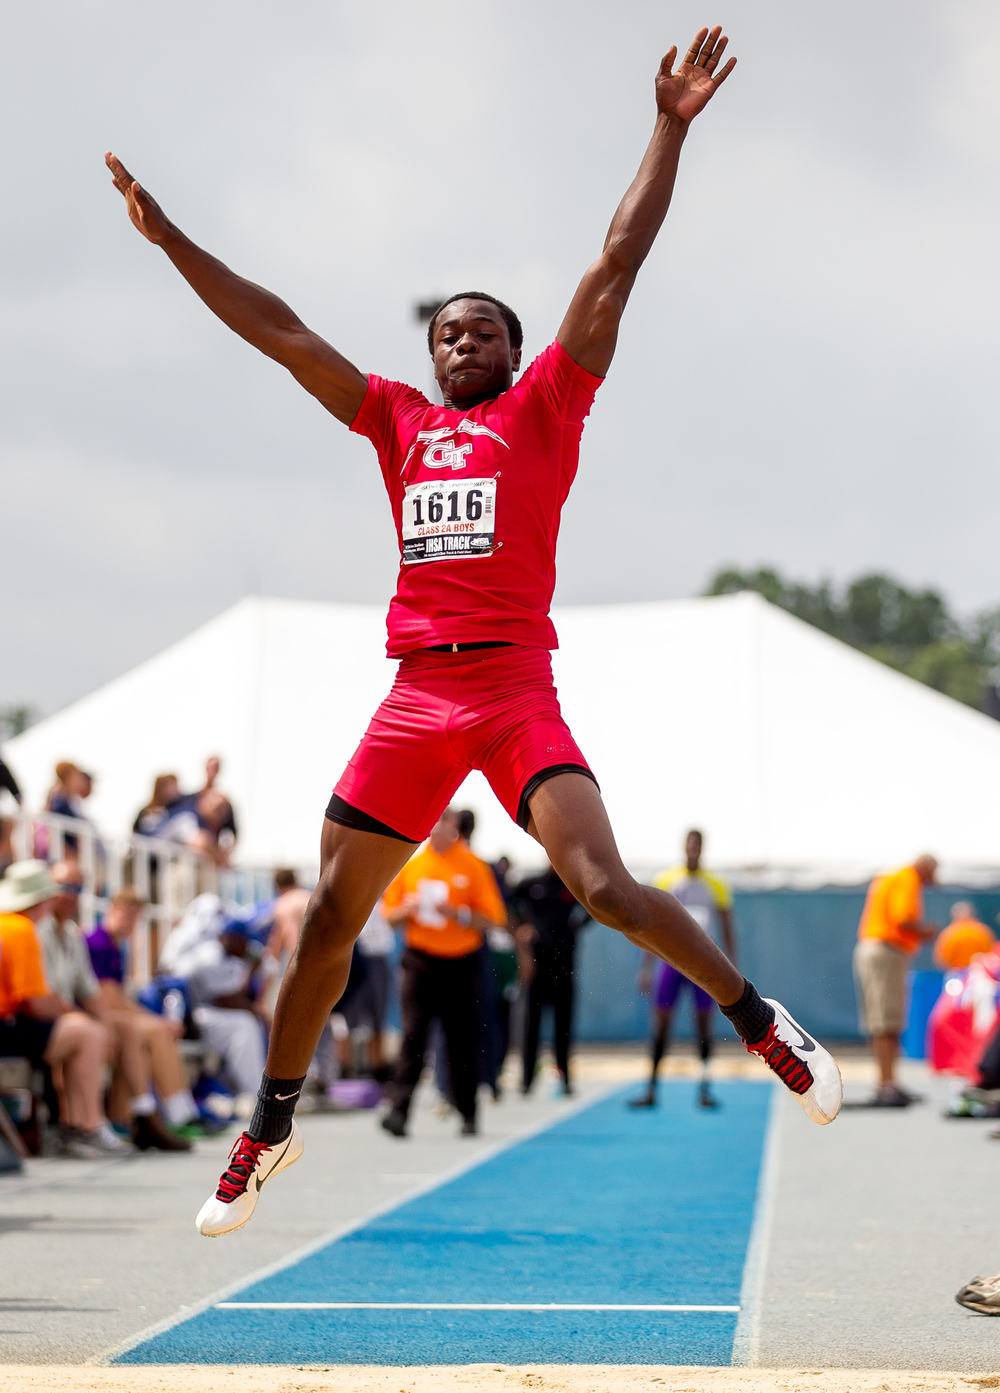 Glenwood's Tony Rolfe competes in the Class 2A Long Jump during the IHSA Boys Track and Field State Finals at O'Brien Stadium, Saturday, May 30, 2015, in Charleston, Ill. Rolfe finished 4th with a best jump of 22-01.50. Justin L. Fowler/The State Journal-Register